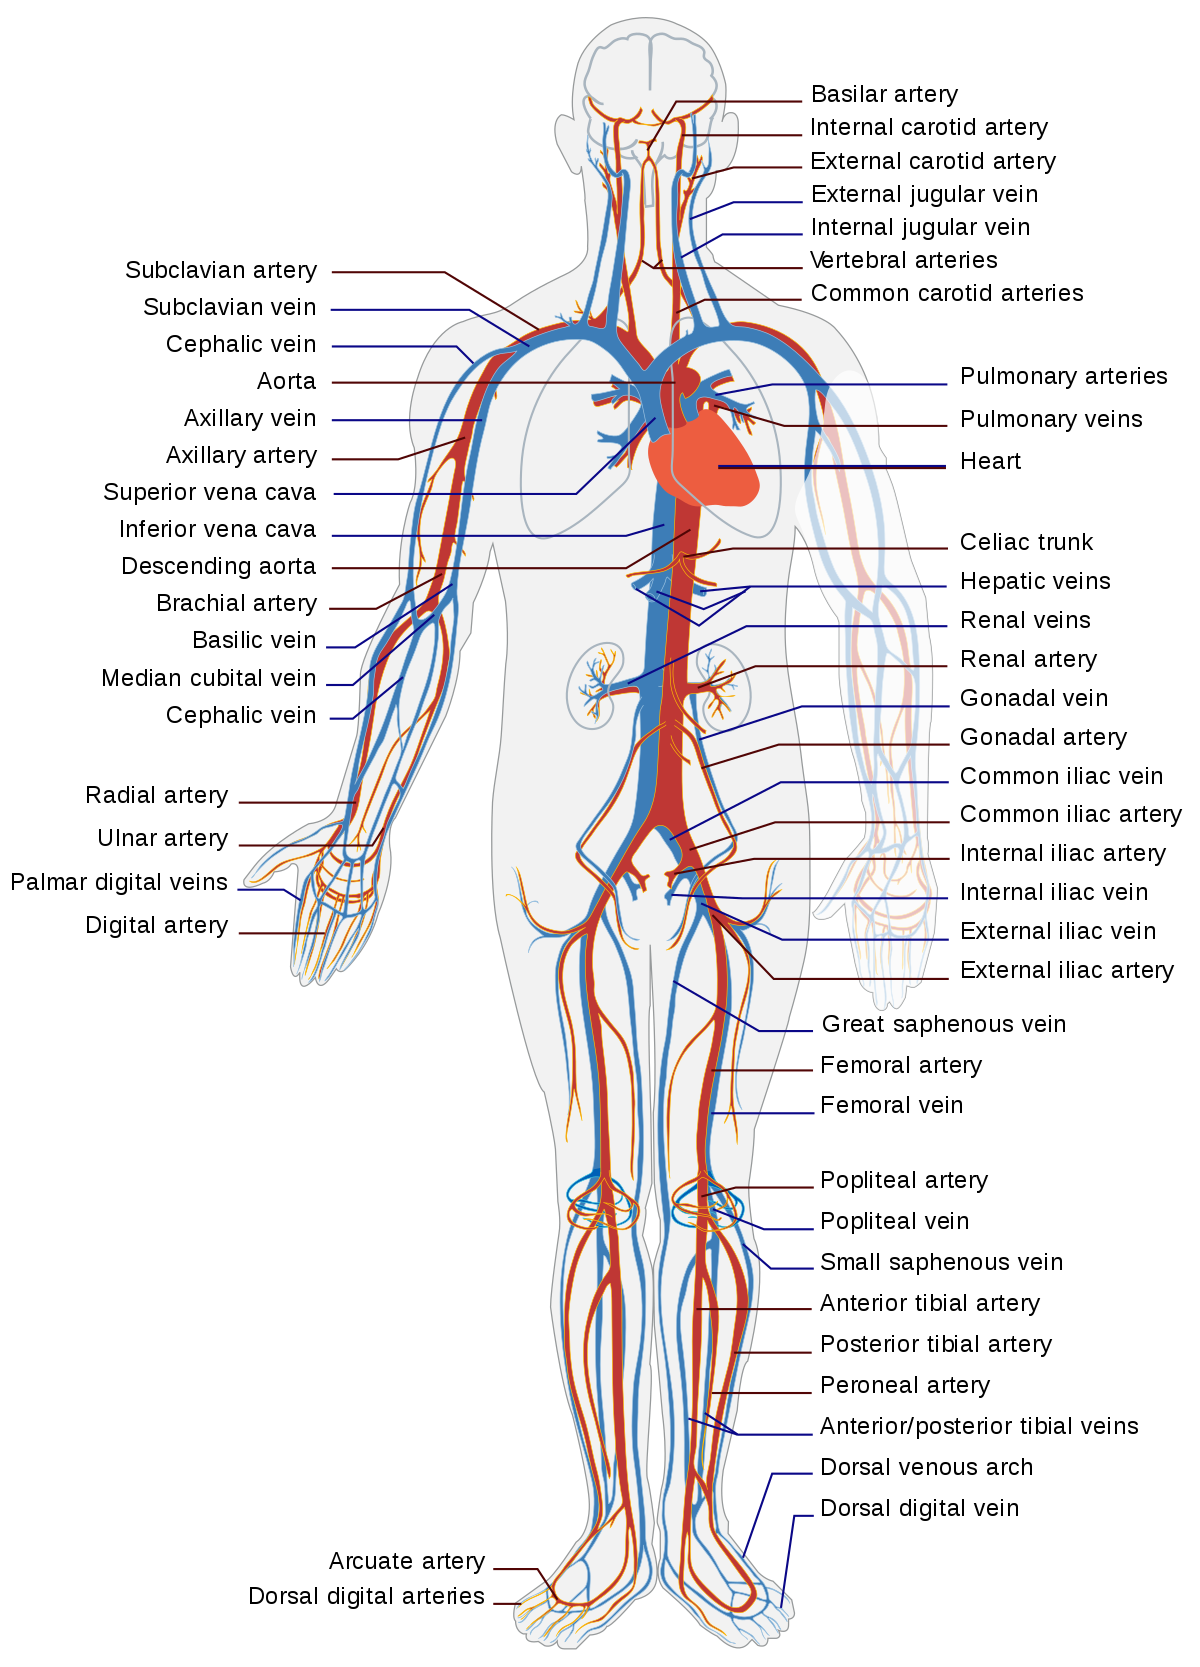 Svg graft femoral tibial bypass. Circulatory system wikipediam org